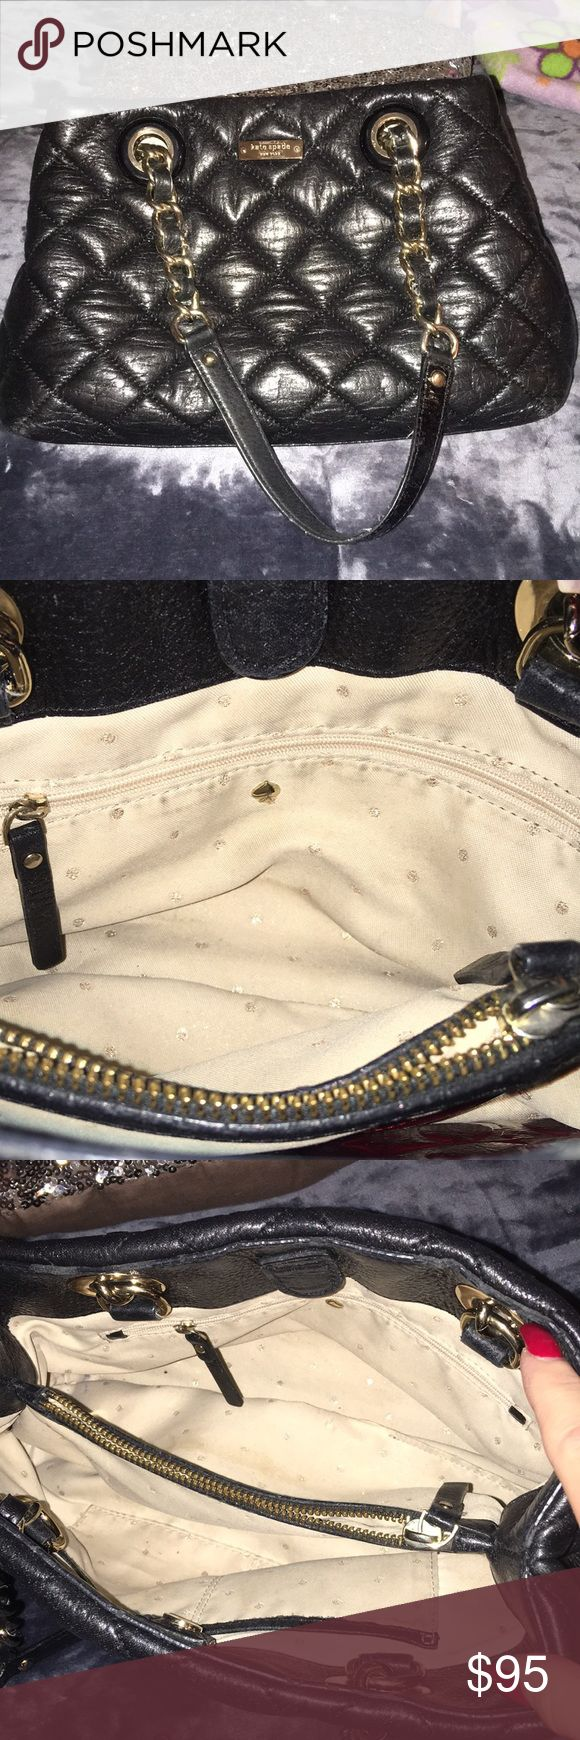 "Black quilted Kate Spade handbag Cute Kate Spade purse, used lovingly.  13"" across and 8"" length. Darling bag needs a new home who will enjoy her as much as I have. kate spade Bags Shoulder Bags"